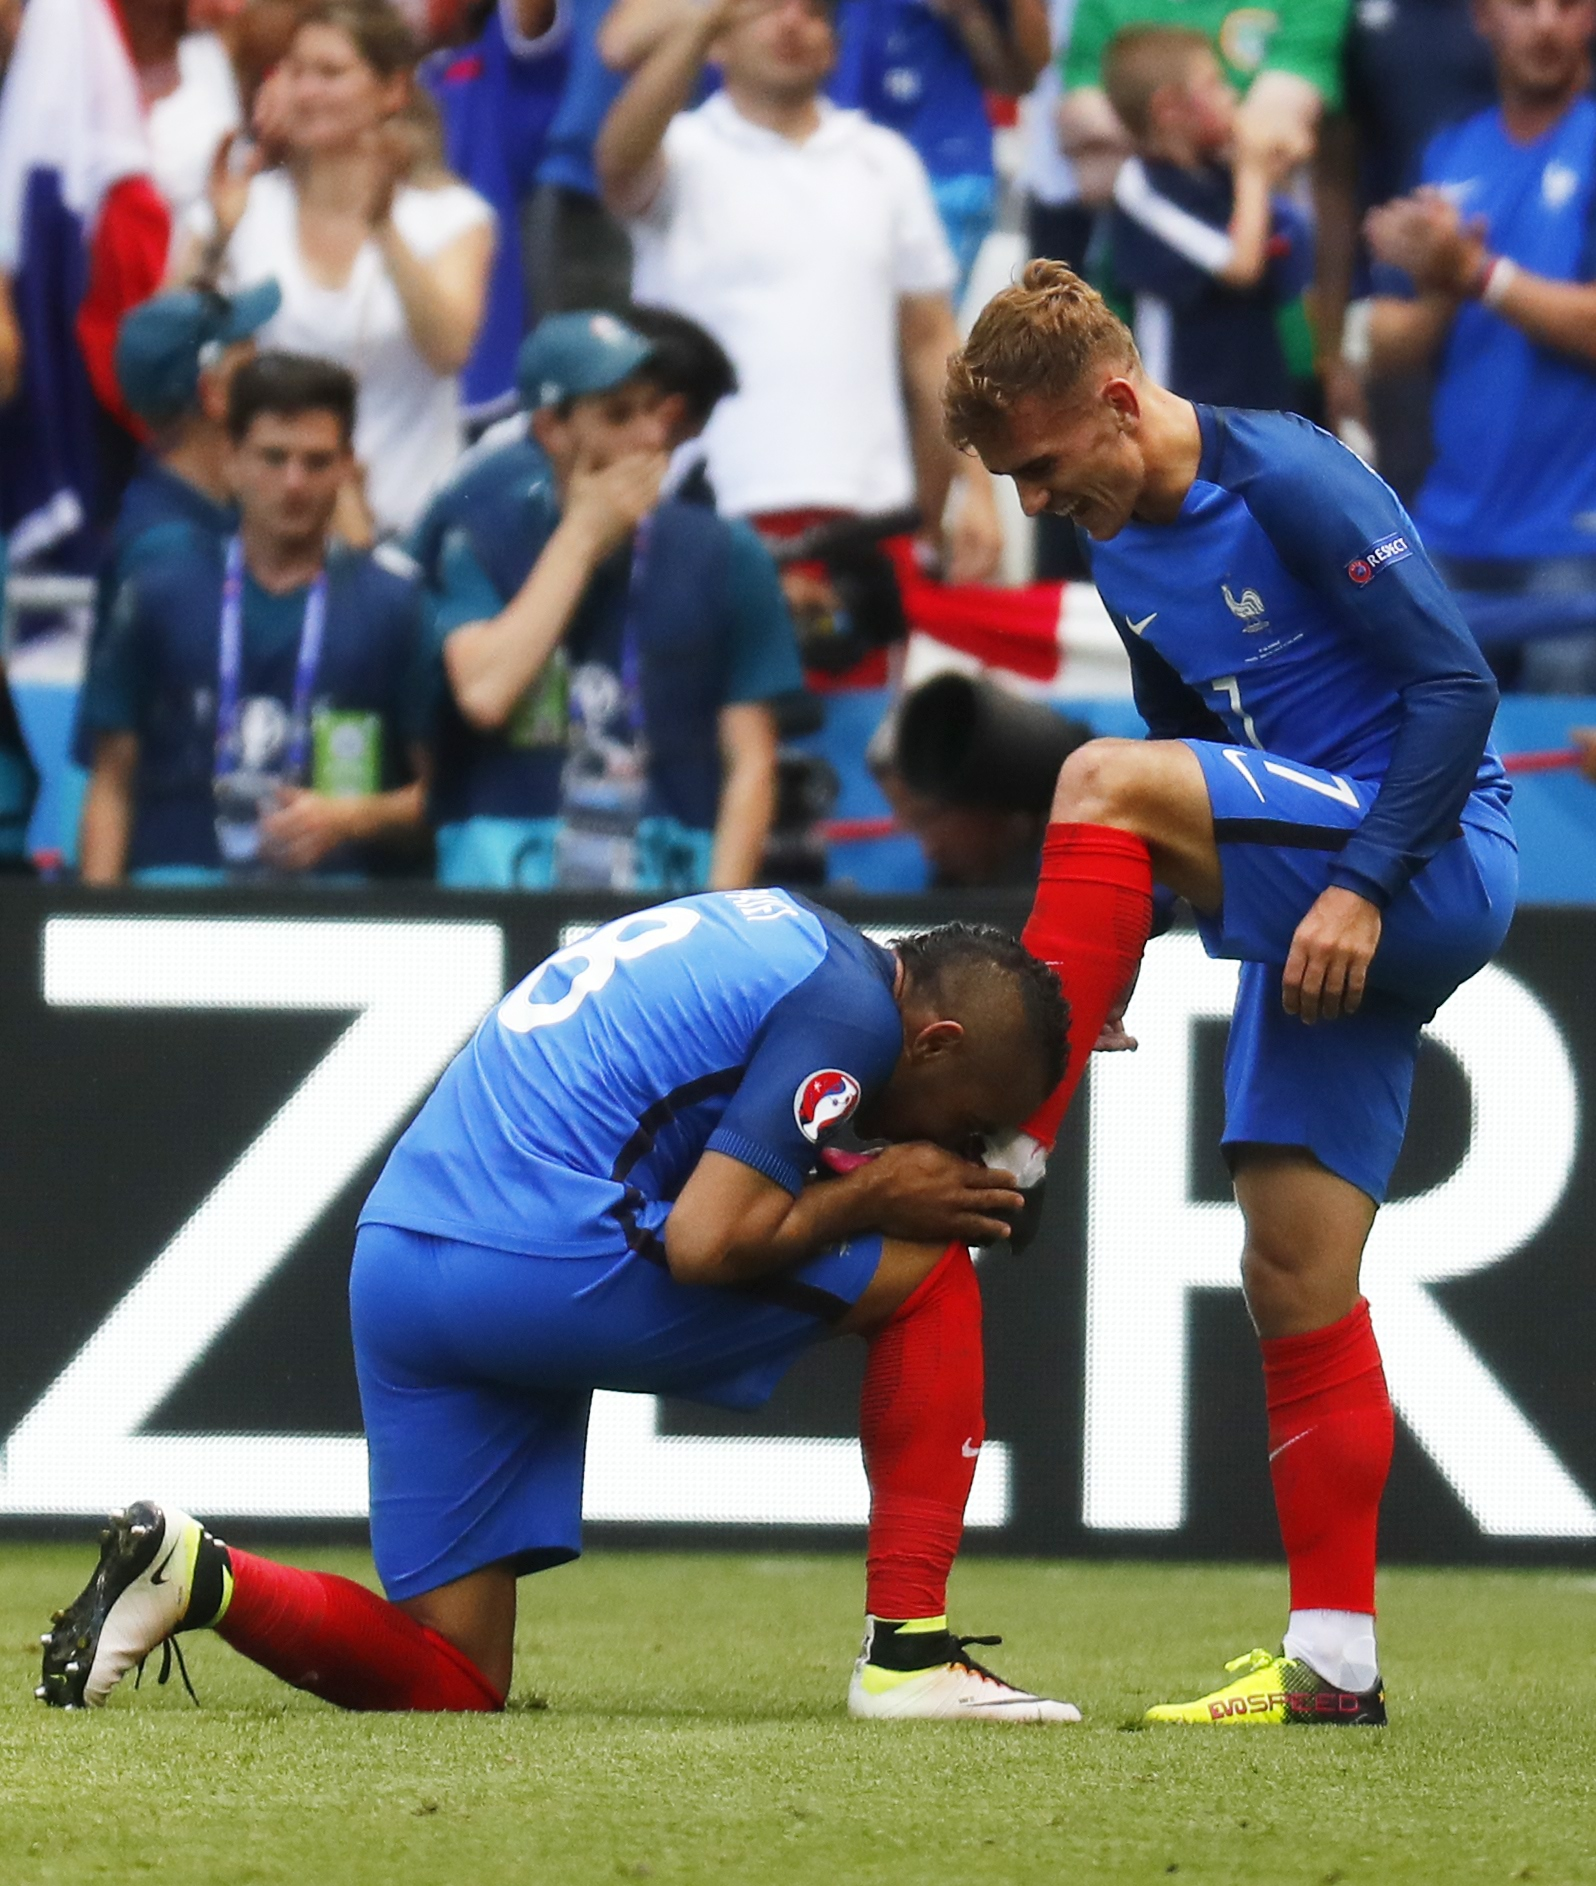 Football Soccer - France v Republic of Ireland - EURO 2016 - Round of 16 - Stade de Lyon, Lyon, France - 26/6/16 France's Antoine Griezmann celebrates with Dimitri Payet after scoring their second goal REUTERS/Kai Pfaffenbach Livepic